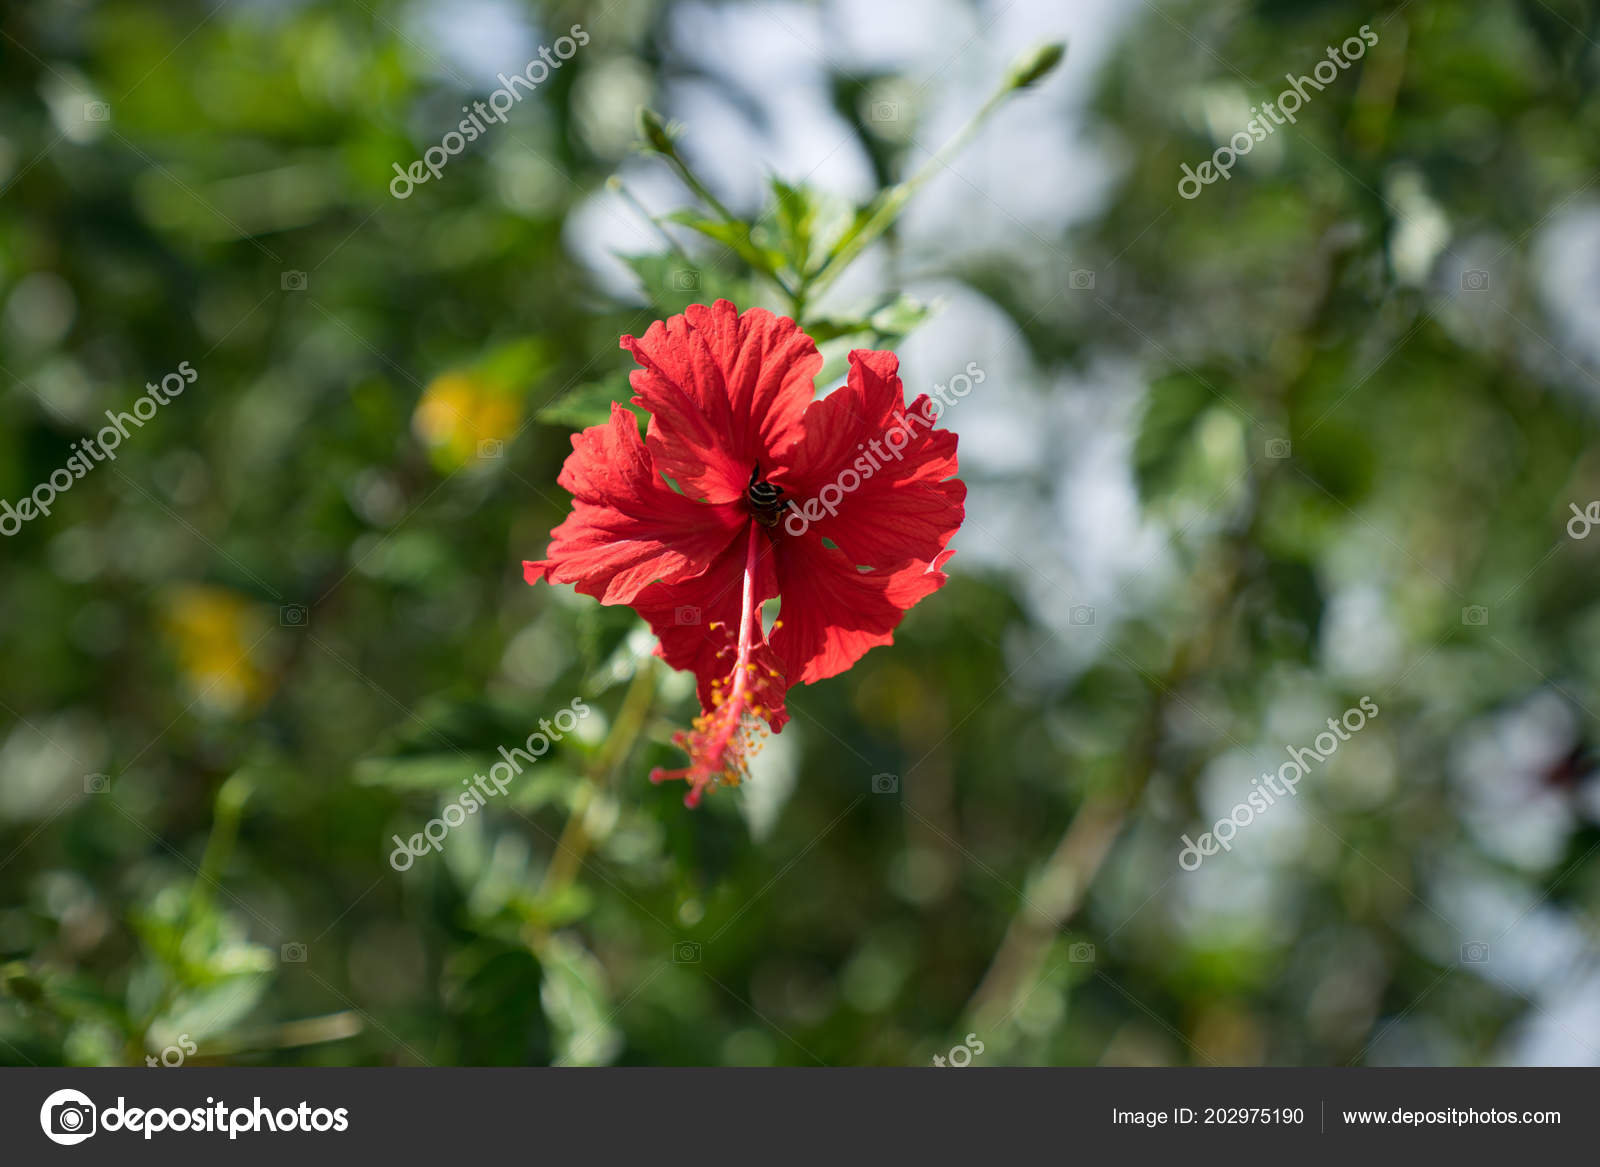 Close View Red Hibiscus Flower Shoe Flower Green Leaves Bokeh